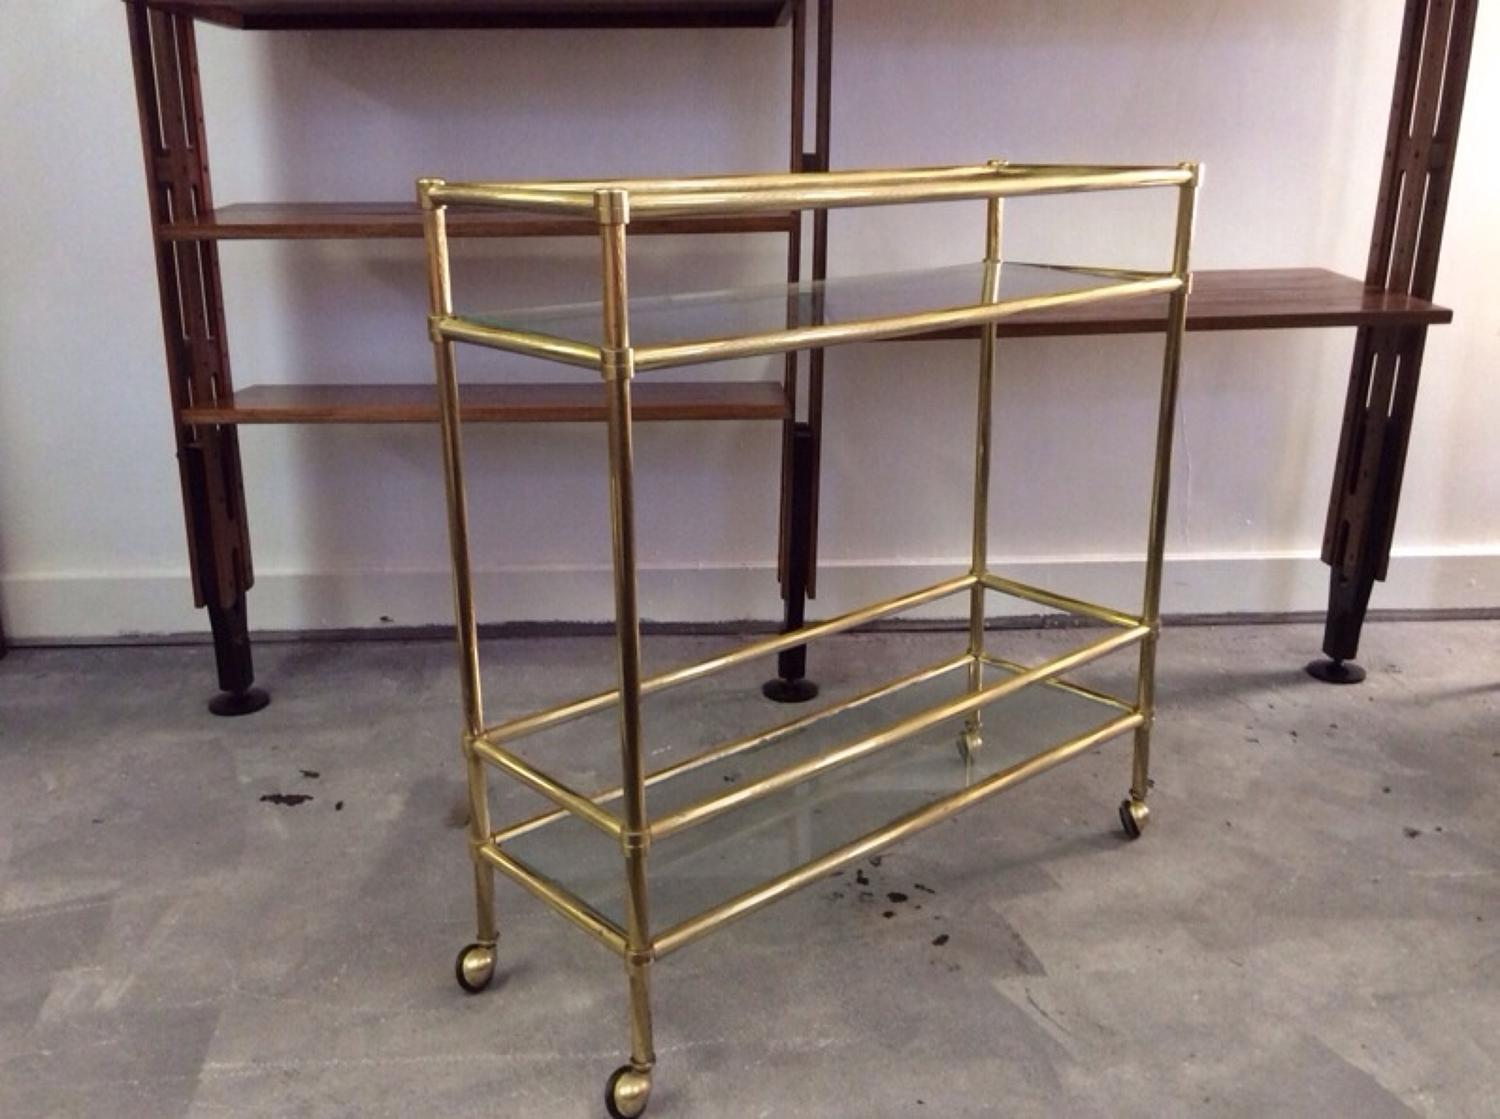 Gilt metal trolley or console table